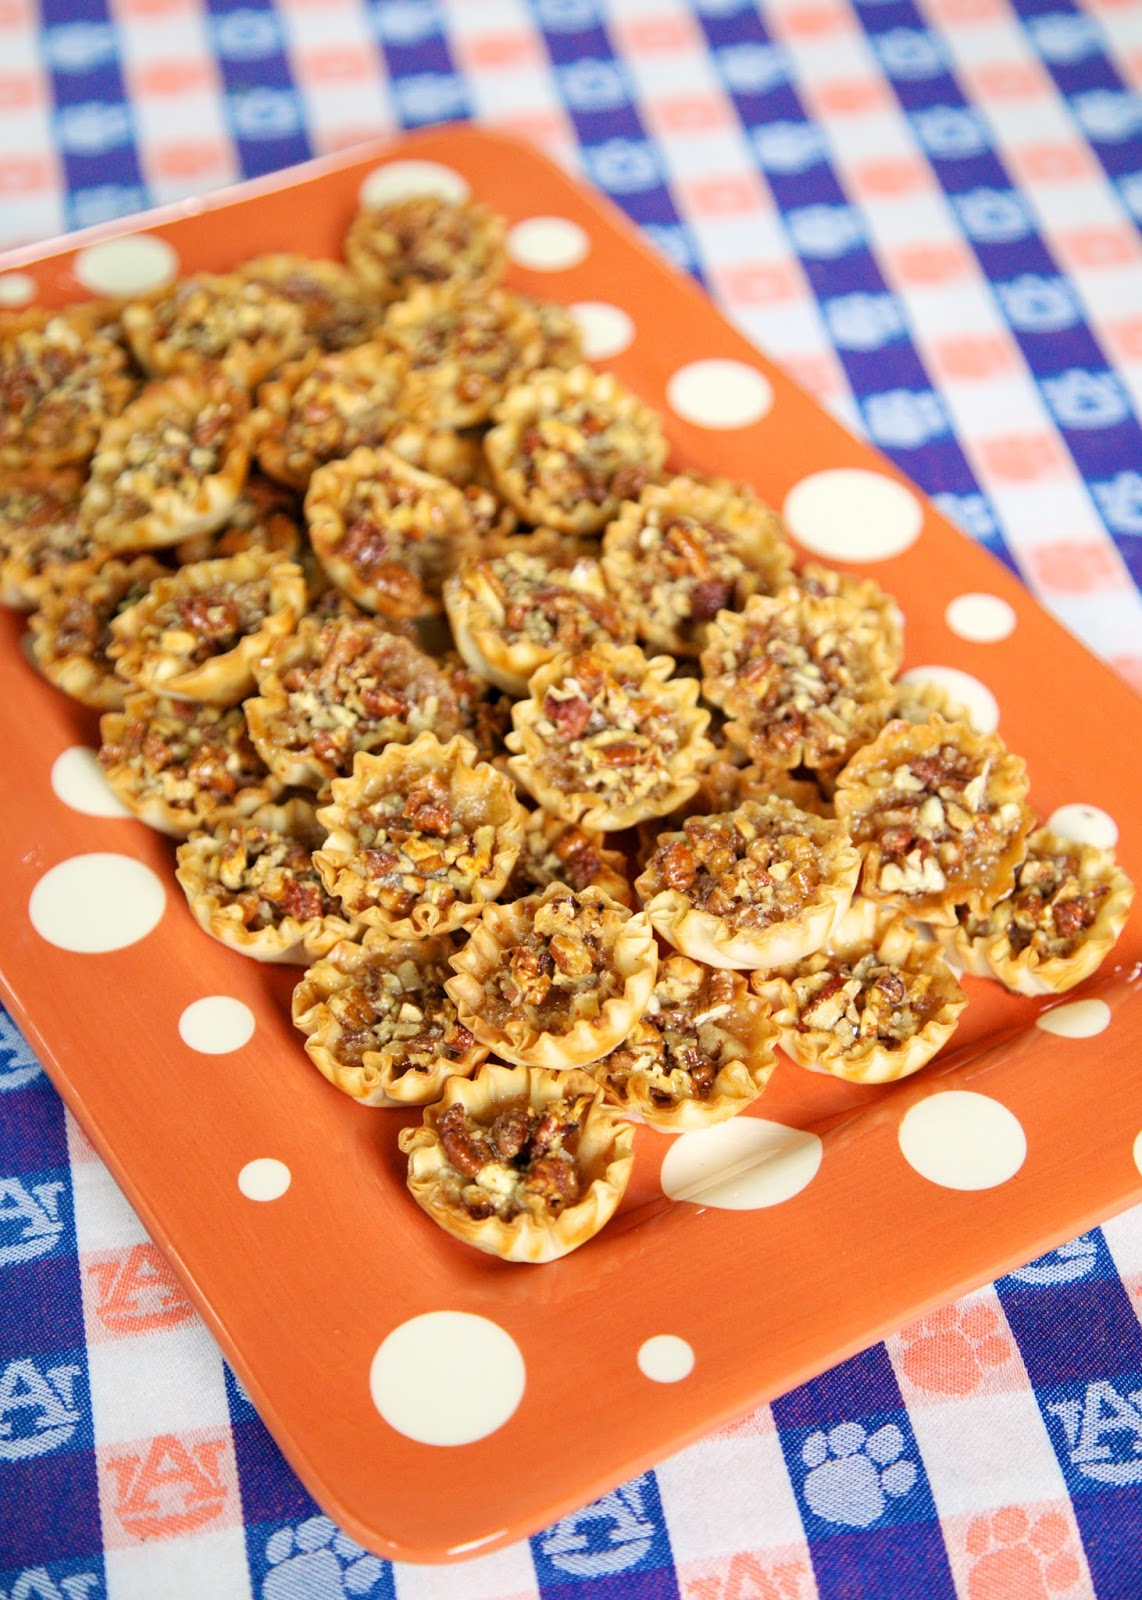 Pecan Pie Bites - pecan pie filling baked in a phyllo shell - great for parties, tailgating or Thanksgiving! Everyone LOVES these bite-sized pecan pie bites! Can make ahead of time and store in an airtight container for several days. Such a great easy dessert recipe!